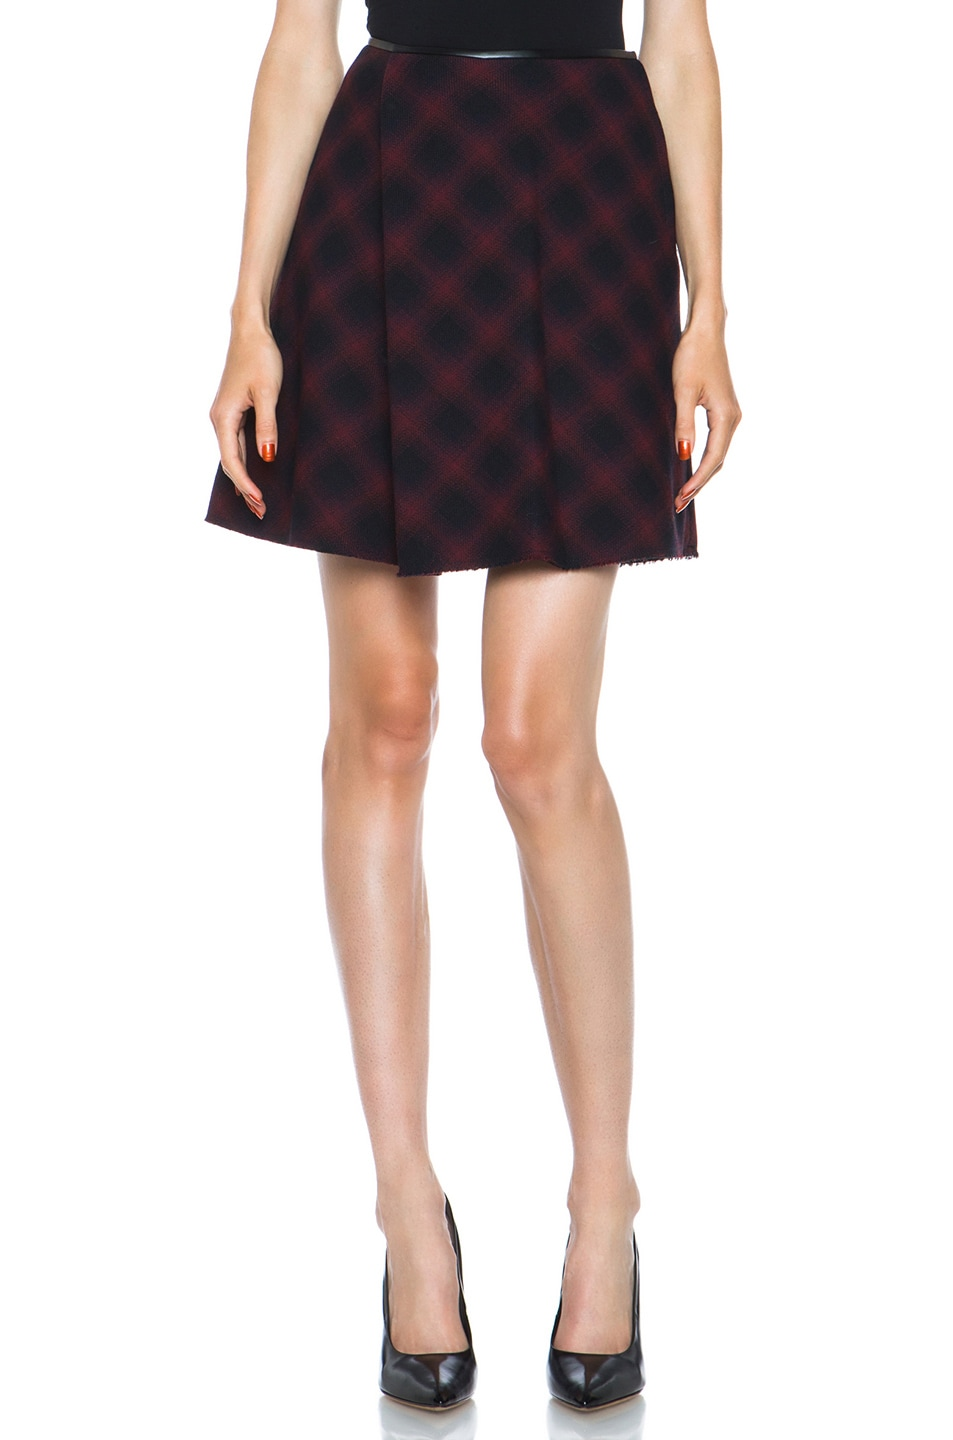 Image 1 of 3.1 phillip lim Sculpted Flare Wool-Blend Skirt in Navy Multi